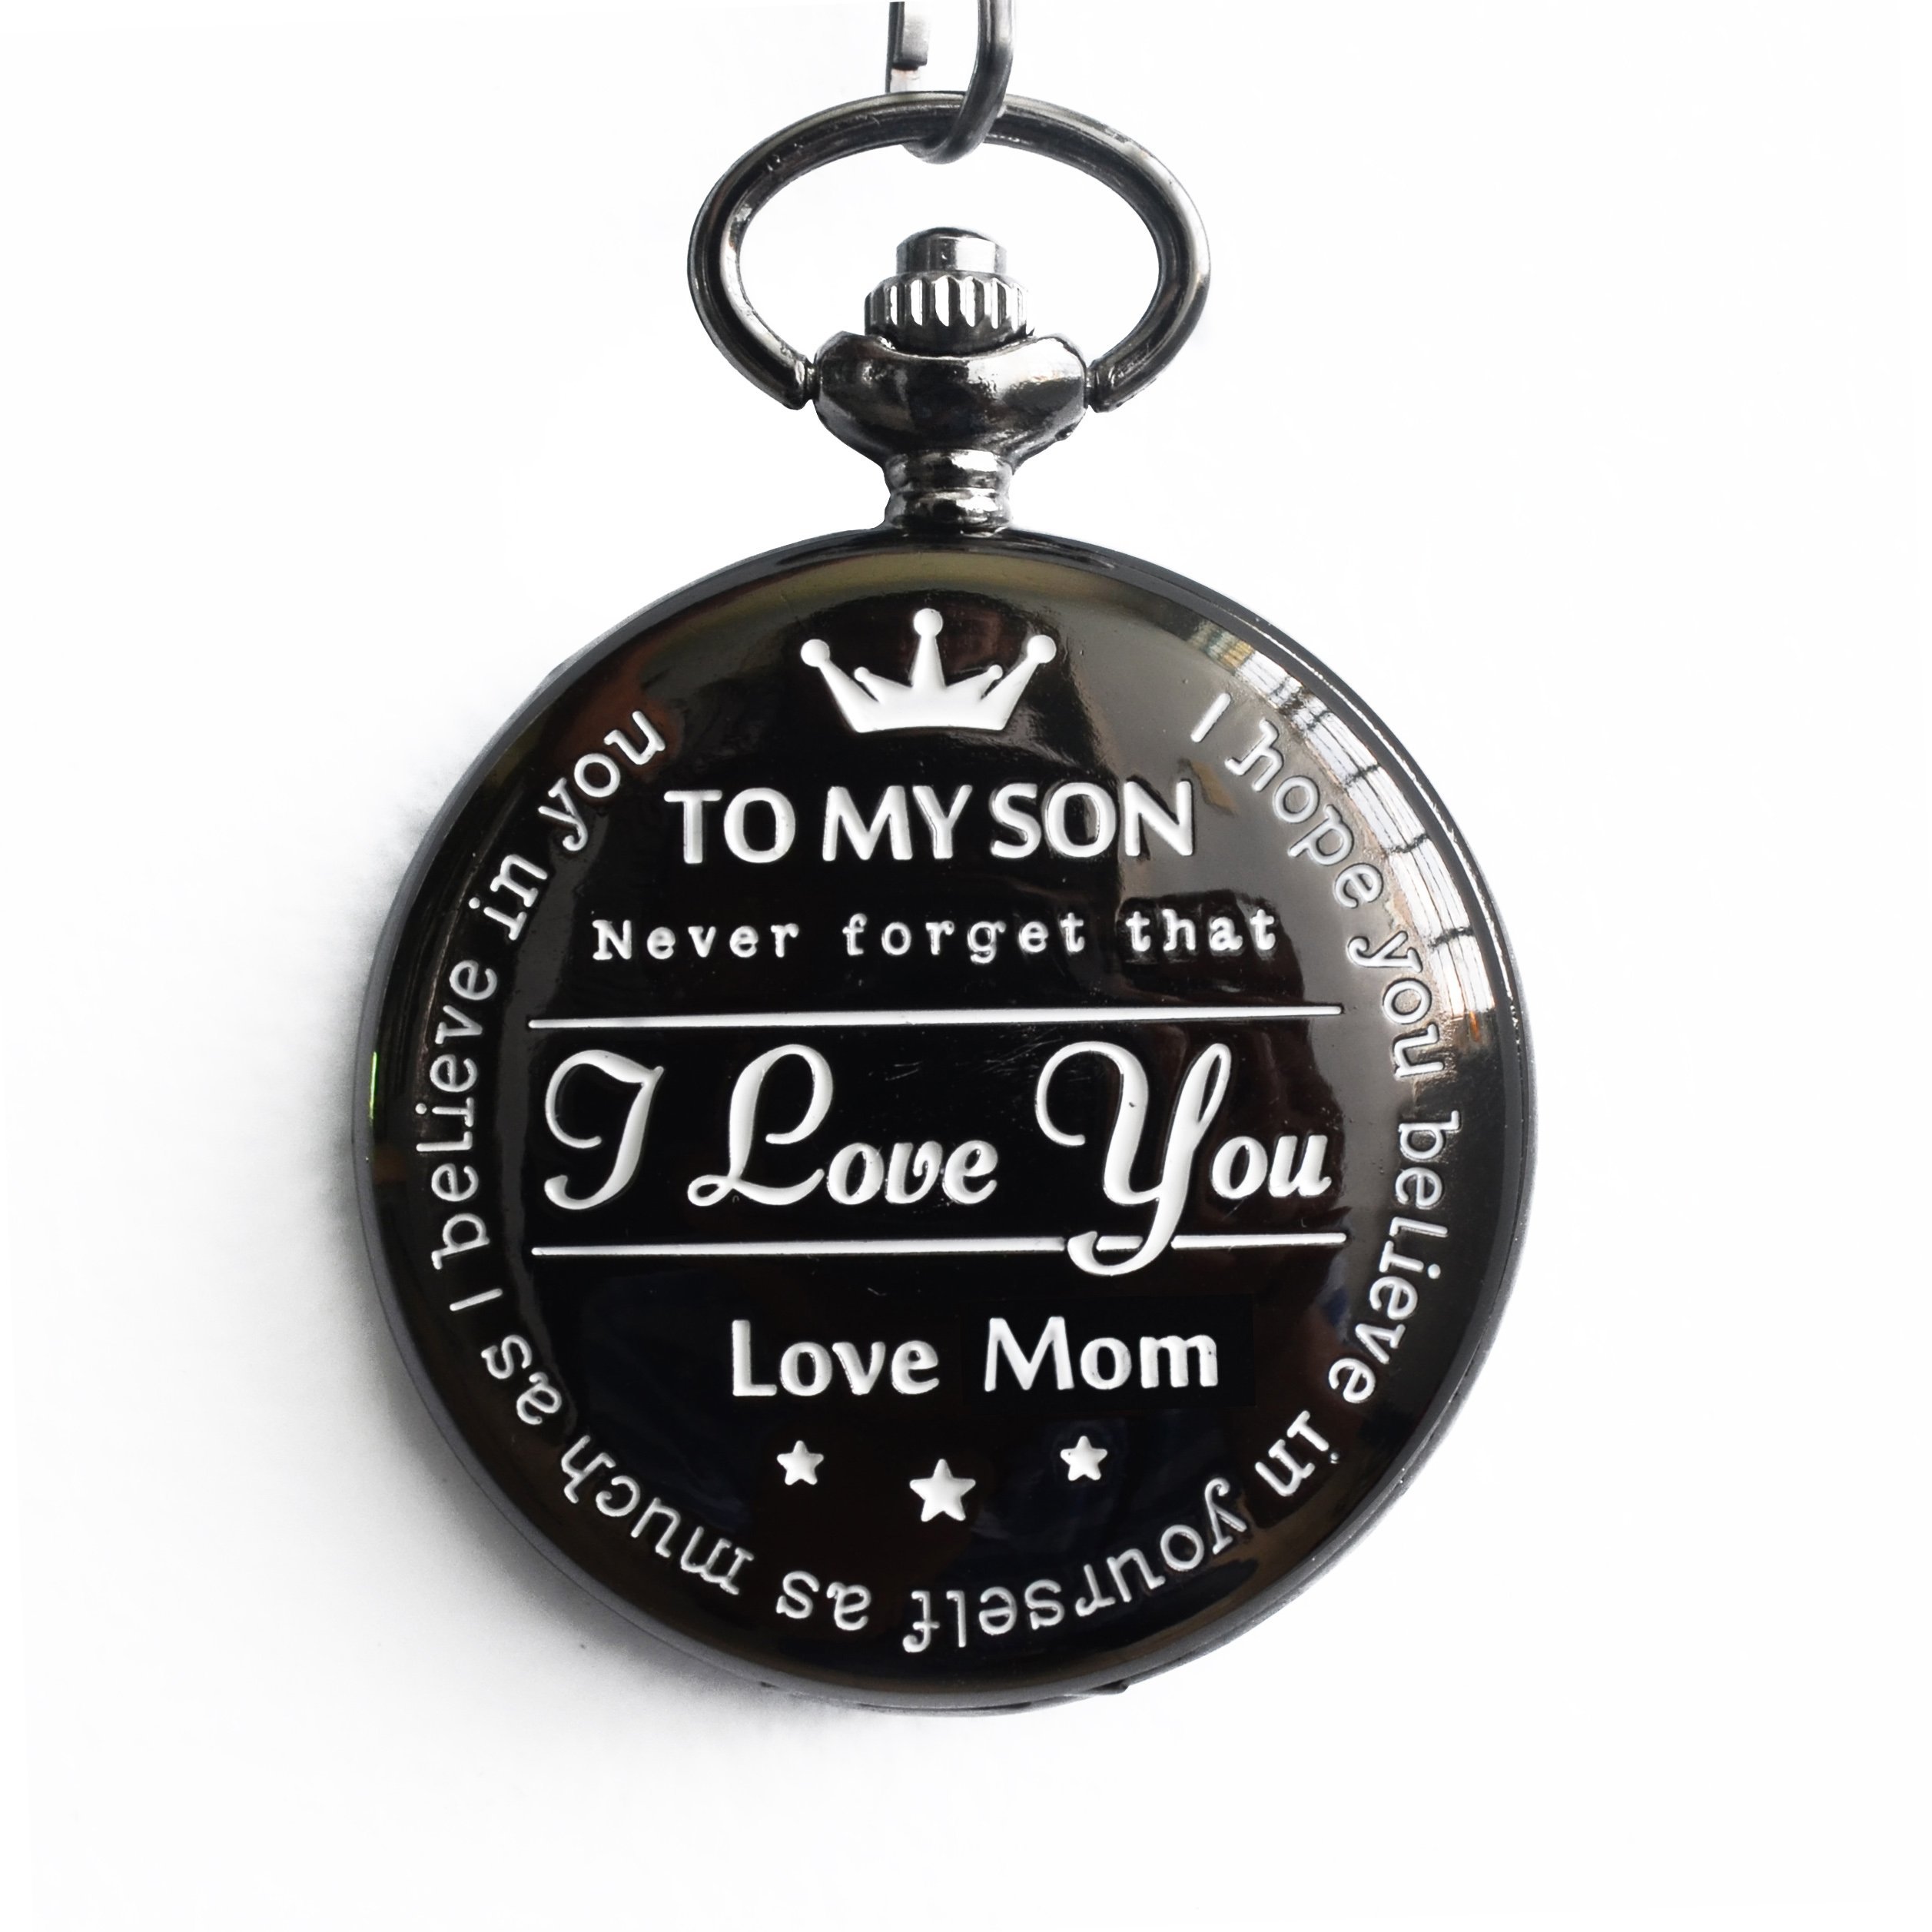 From Mother to Son Gifts From a Mother to a Son Pocket watch